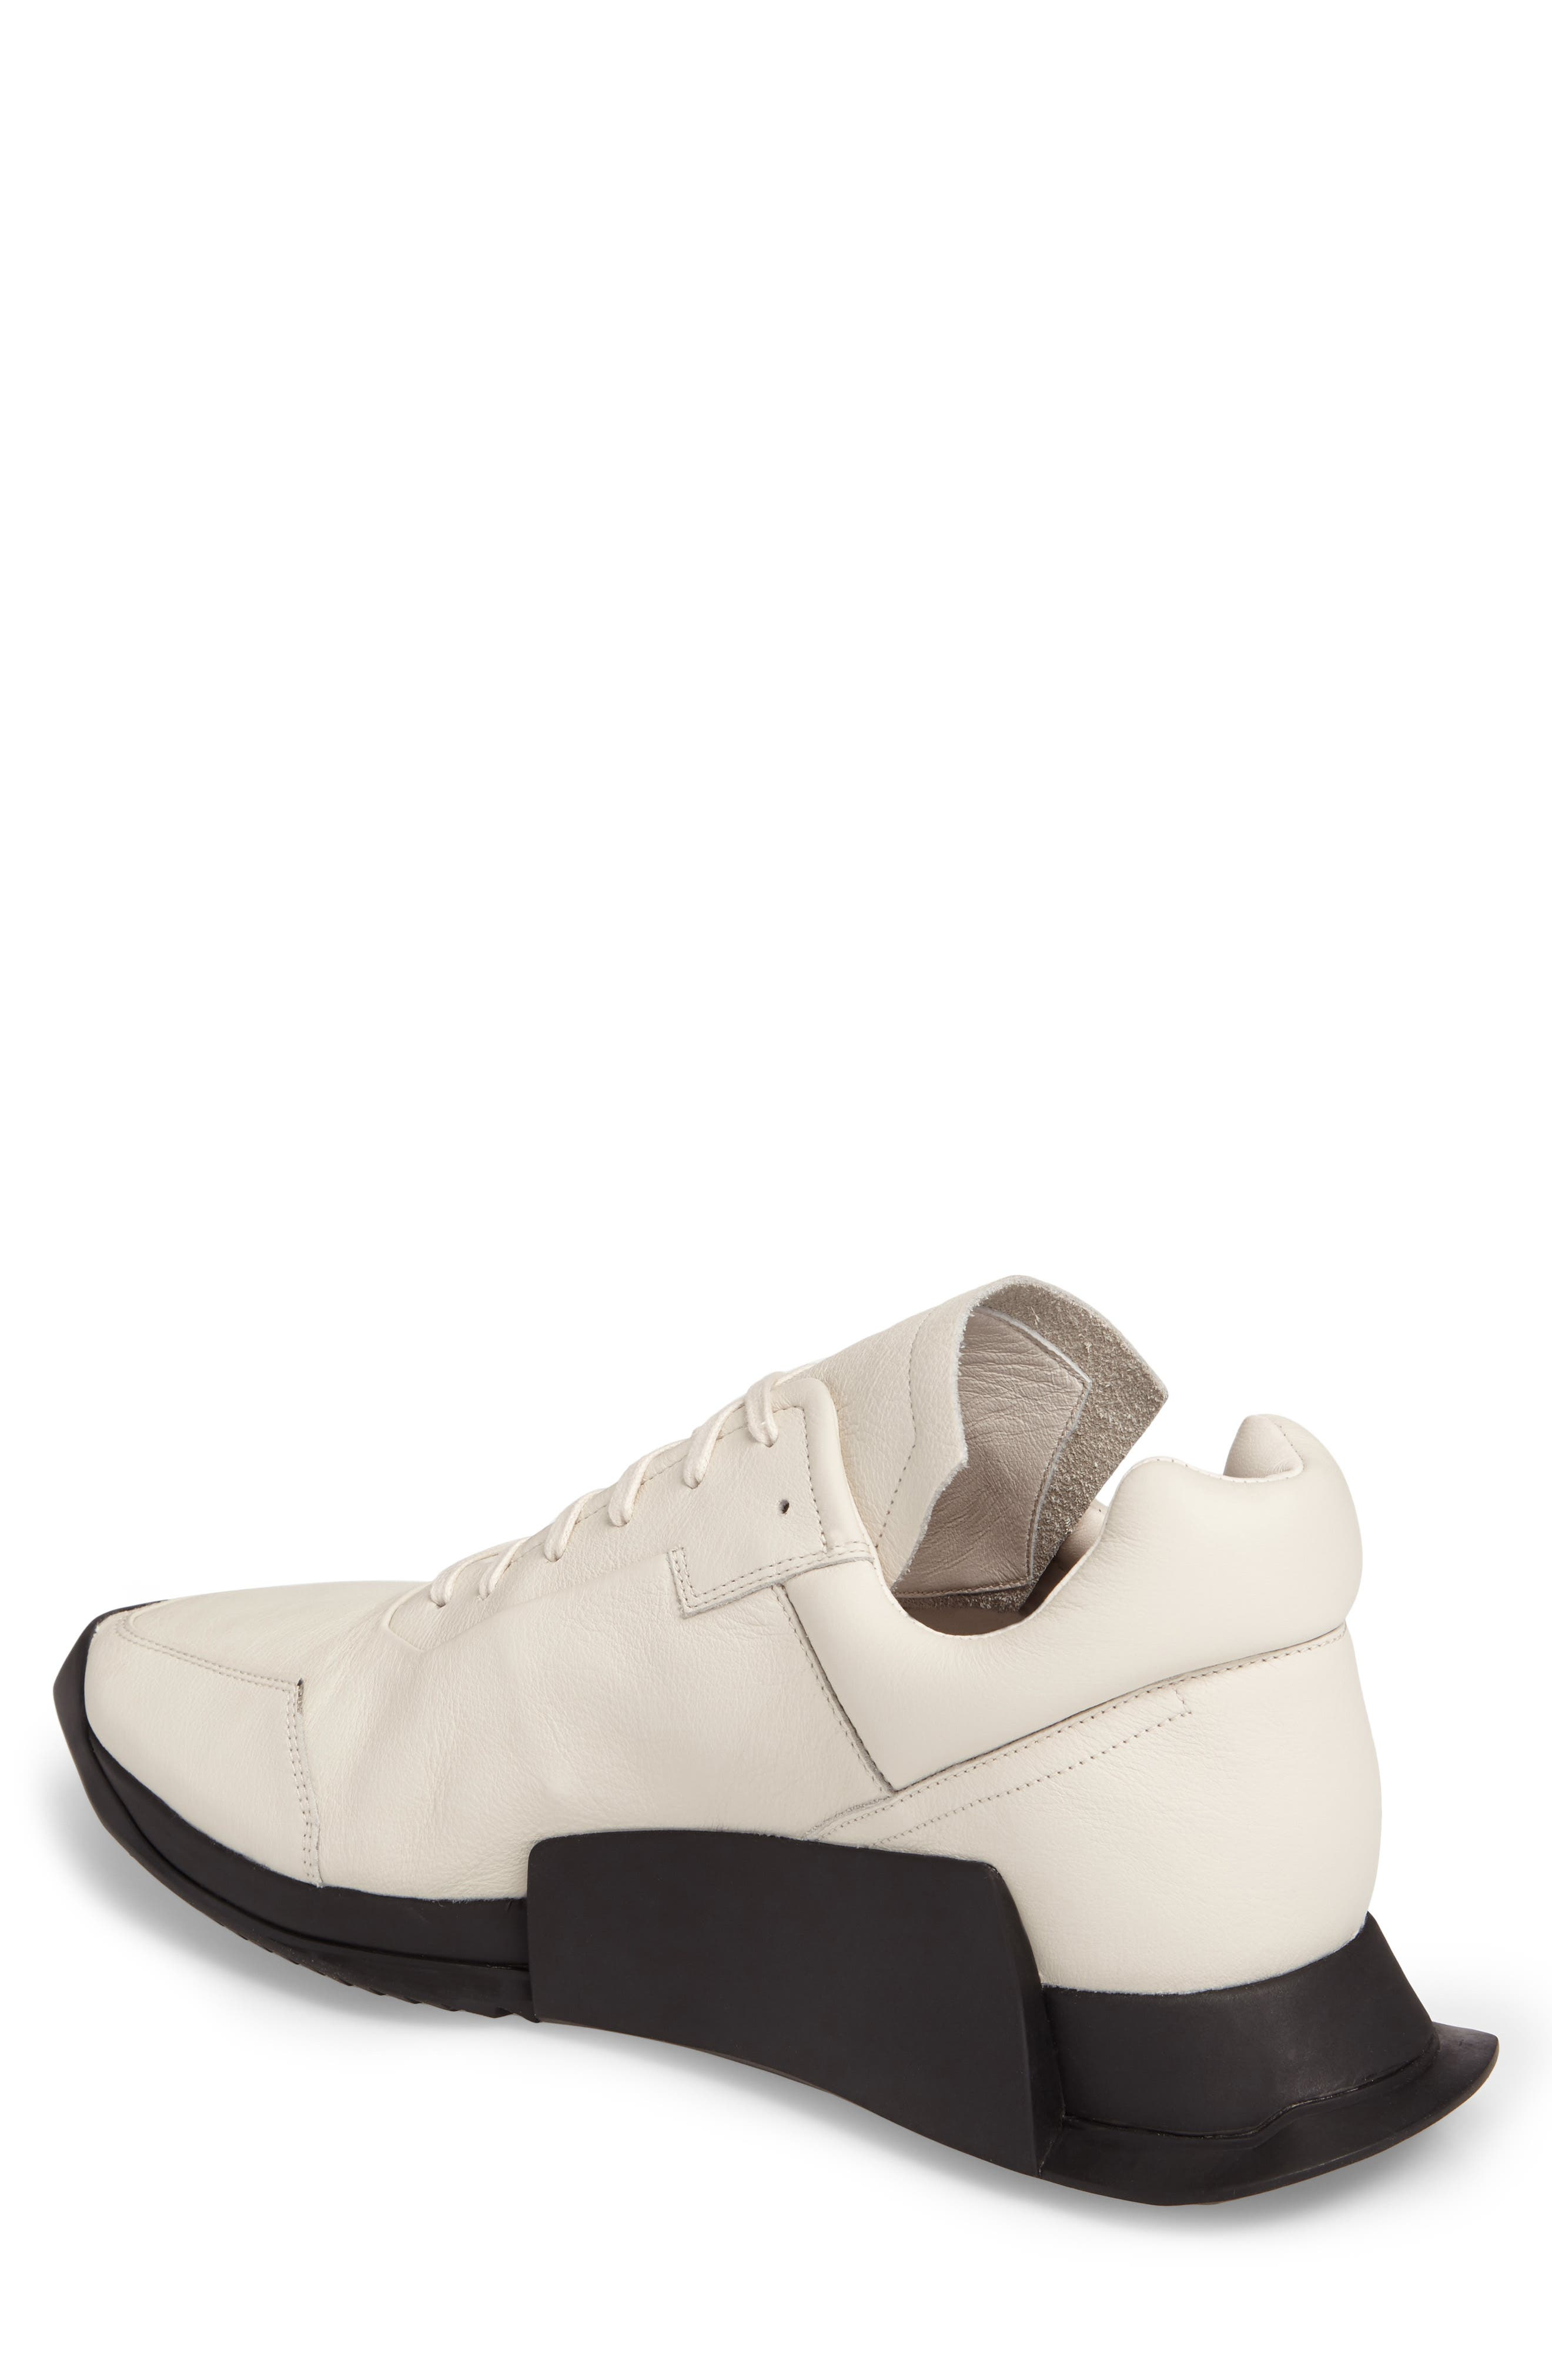 Alternate Image 2  - Rick Owens by adidas New Runner Boost Sneaker (Men)